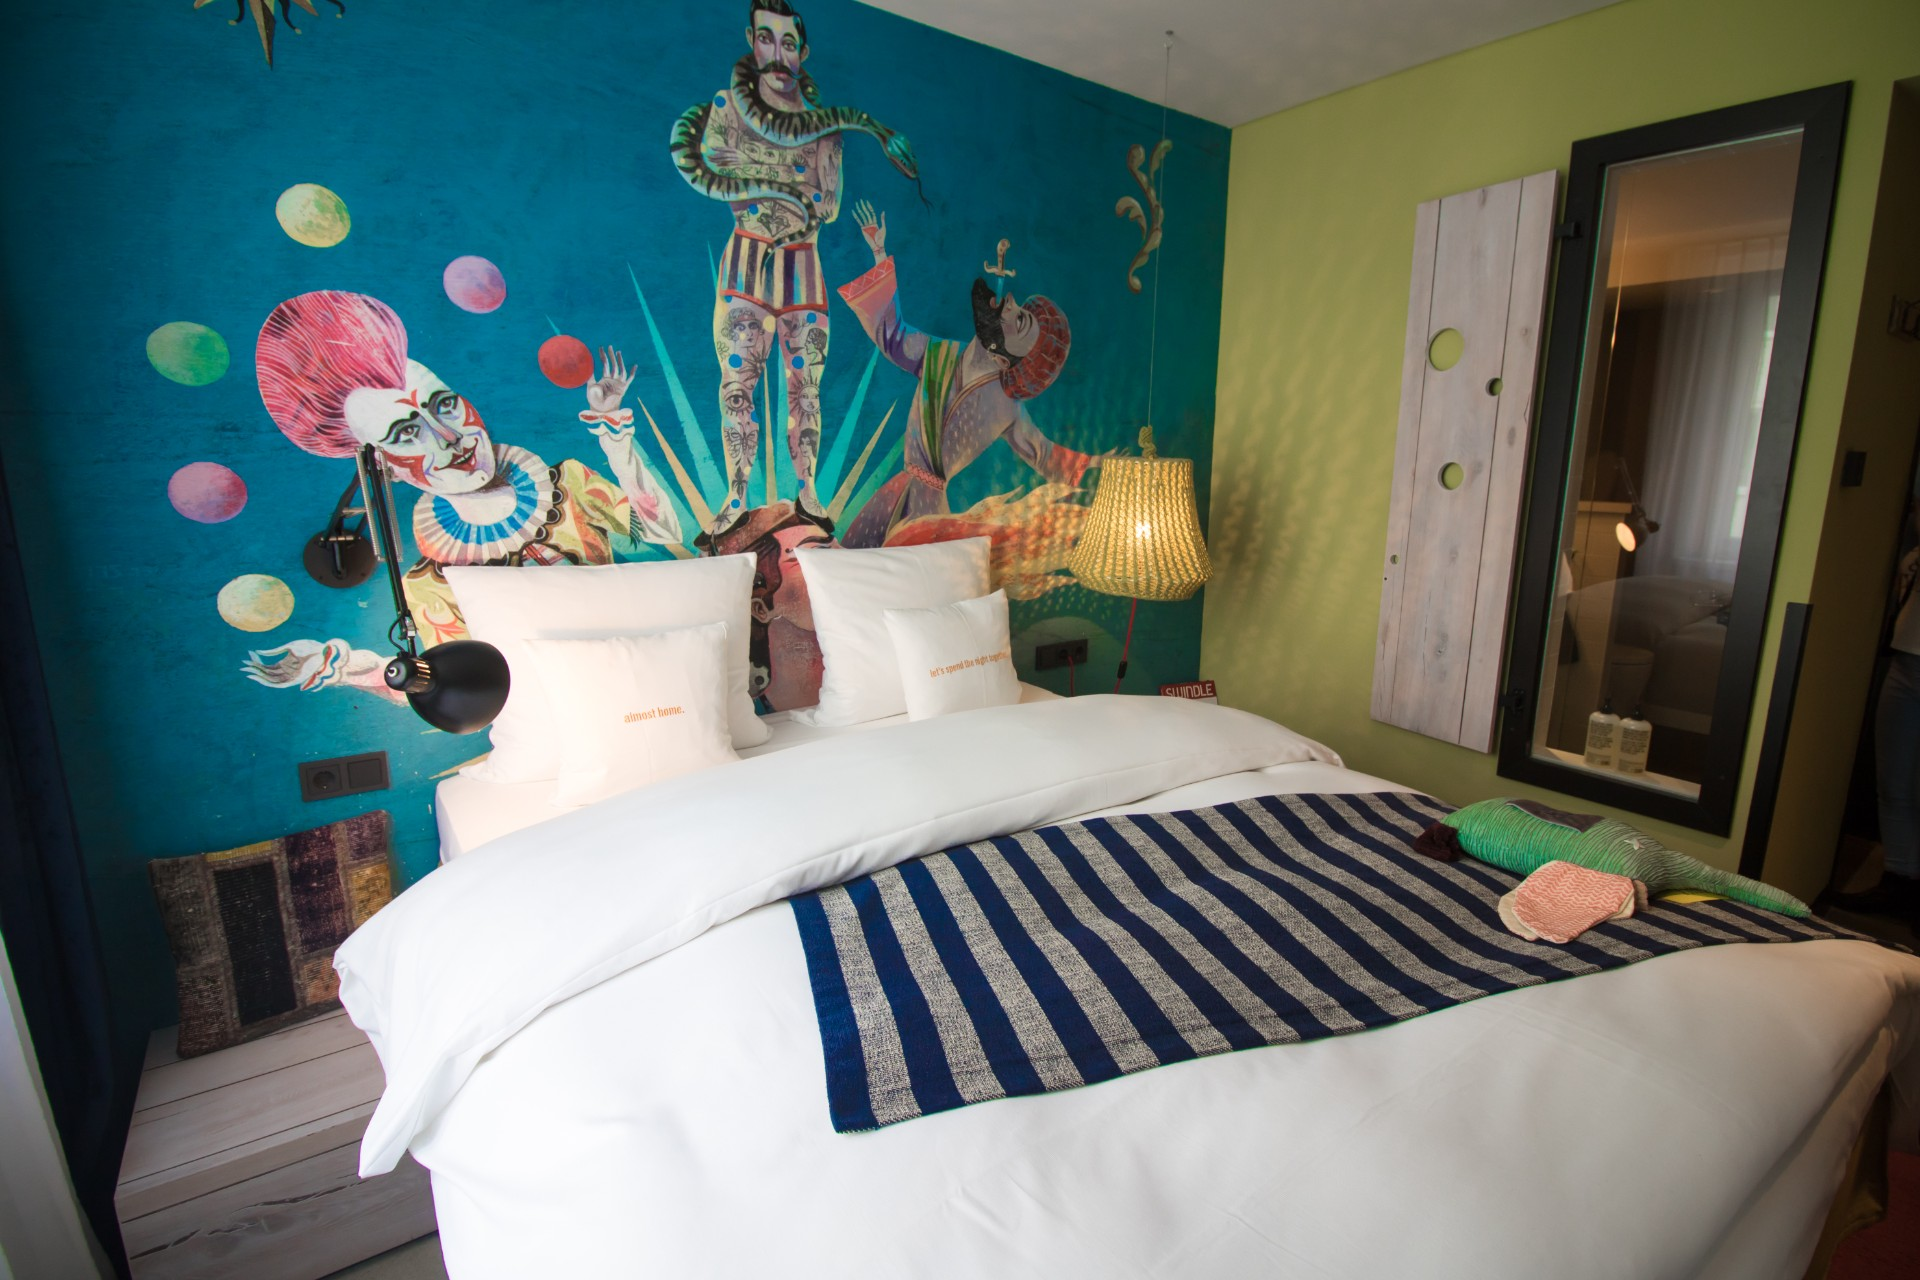 A review of my stay at 25hours Hotel Vienna at Museumsquartier, an eccentric circus-themed design hotel with a rooftop bar, restaurant, burger garden and mermaid's cave spa. This is the coolest, quirkiest, most colourful and fun hotel I have ever stayed at. A hipster or Instagrammer's dream come true! Click through to read more...